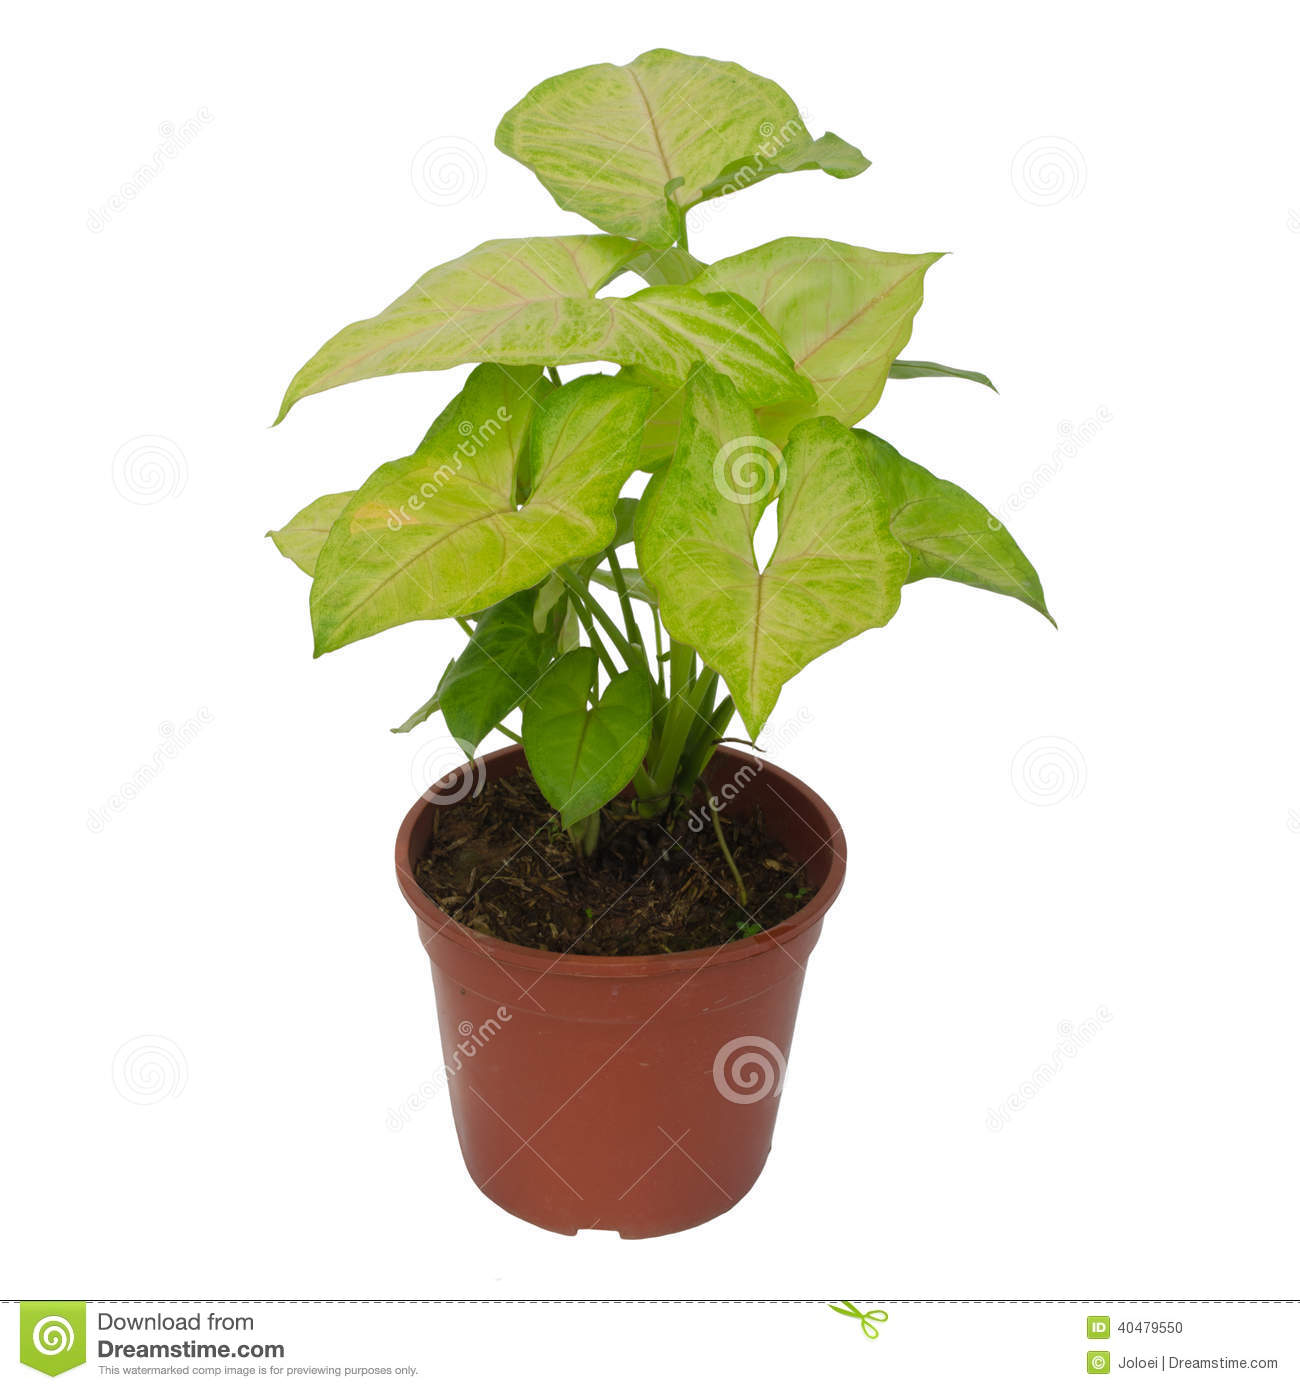 Syngonium de plante d 39 int rieur photo stock image 40479550 for Plante dinterieur